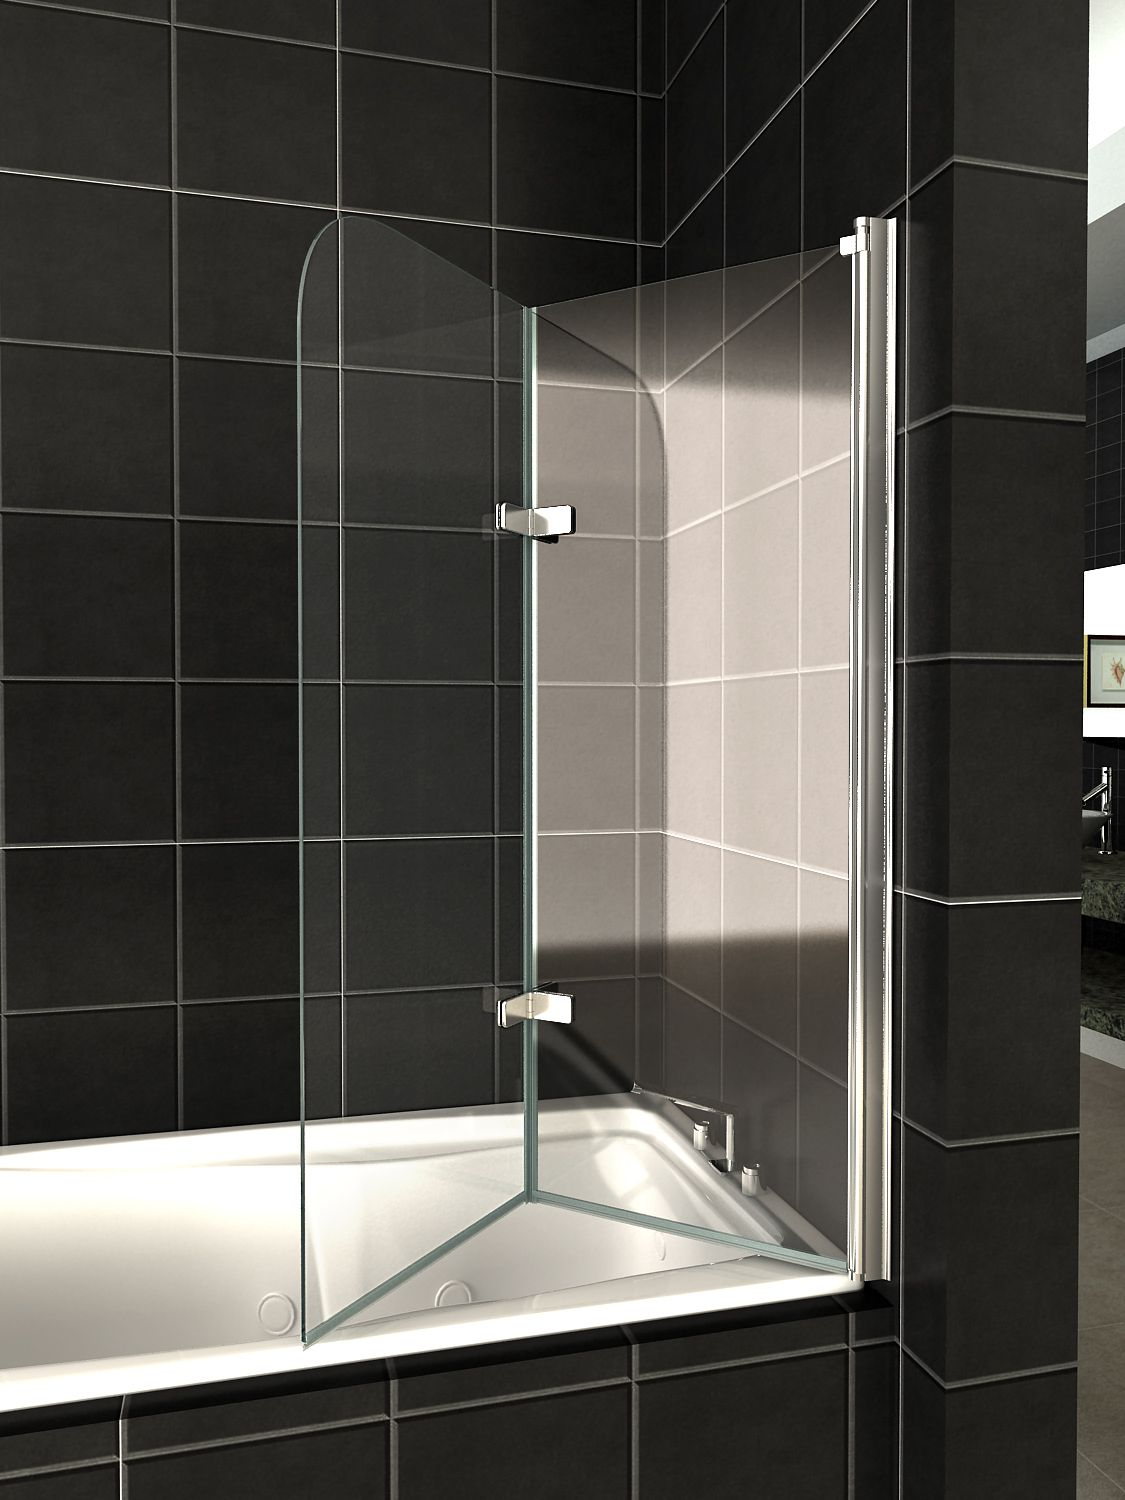 Shower Screen Over Bath 180° pivot glass over bath 2 fold folding shower screen bath door